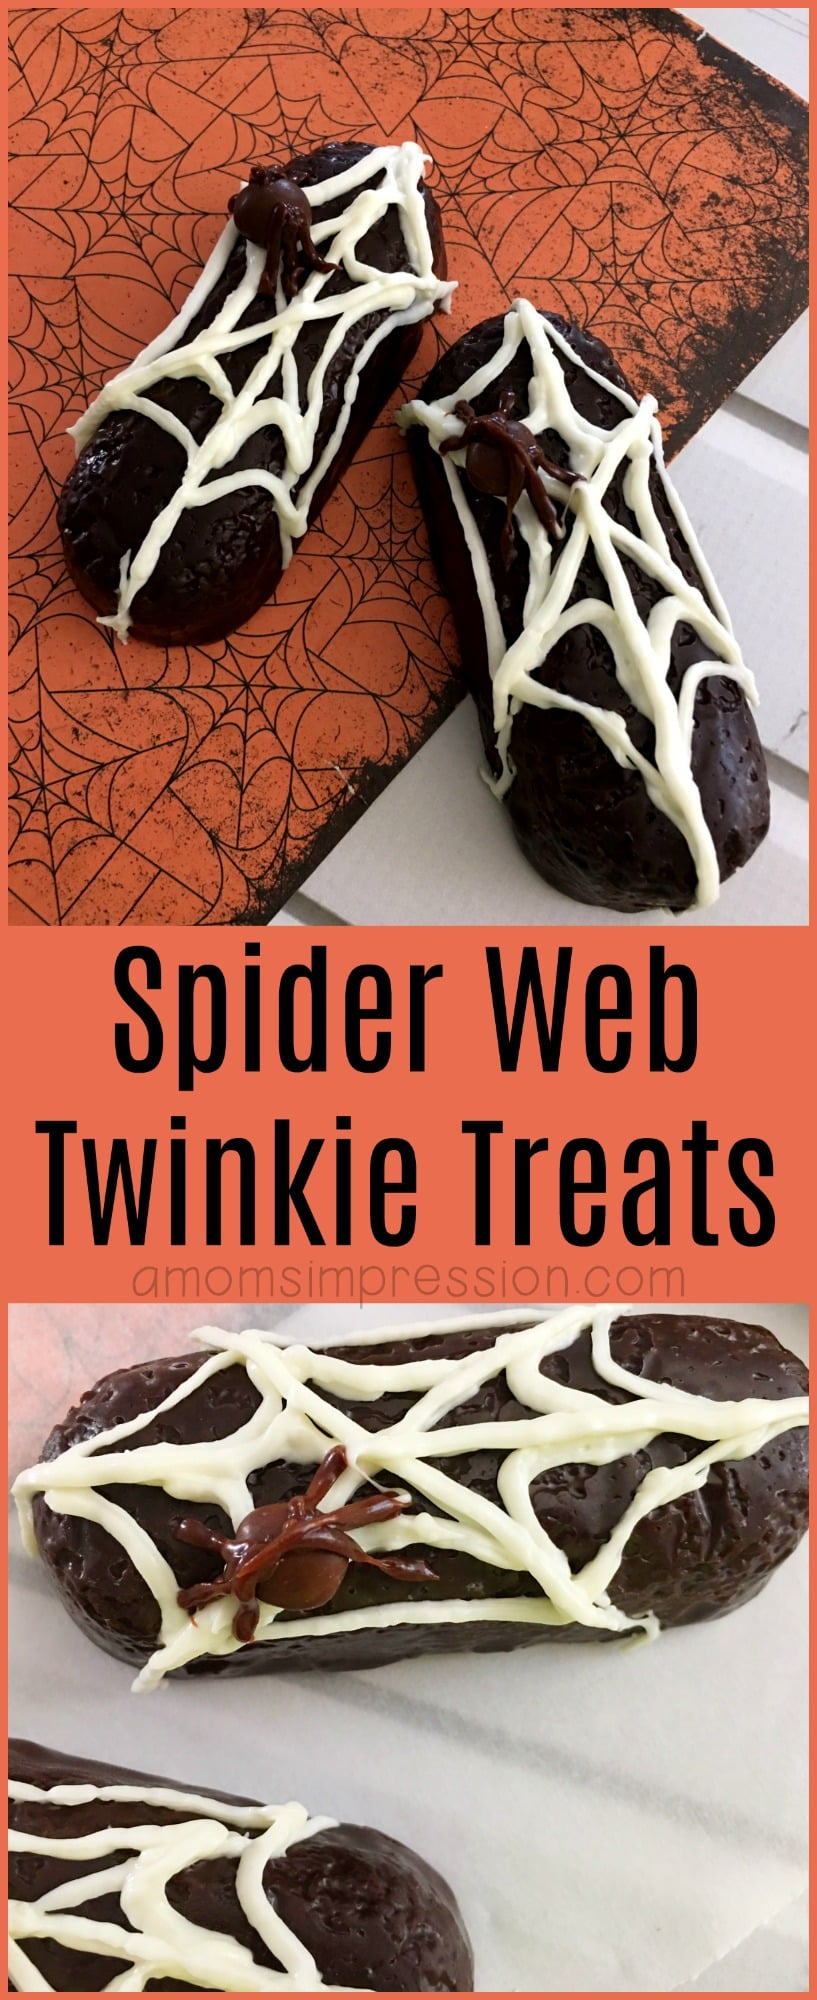 Spider Web Twinkie Treats are fun and easy to make with your kids this Halloween. They take less than 10 minutes to make and are perfect for adults, kids and school parties.